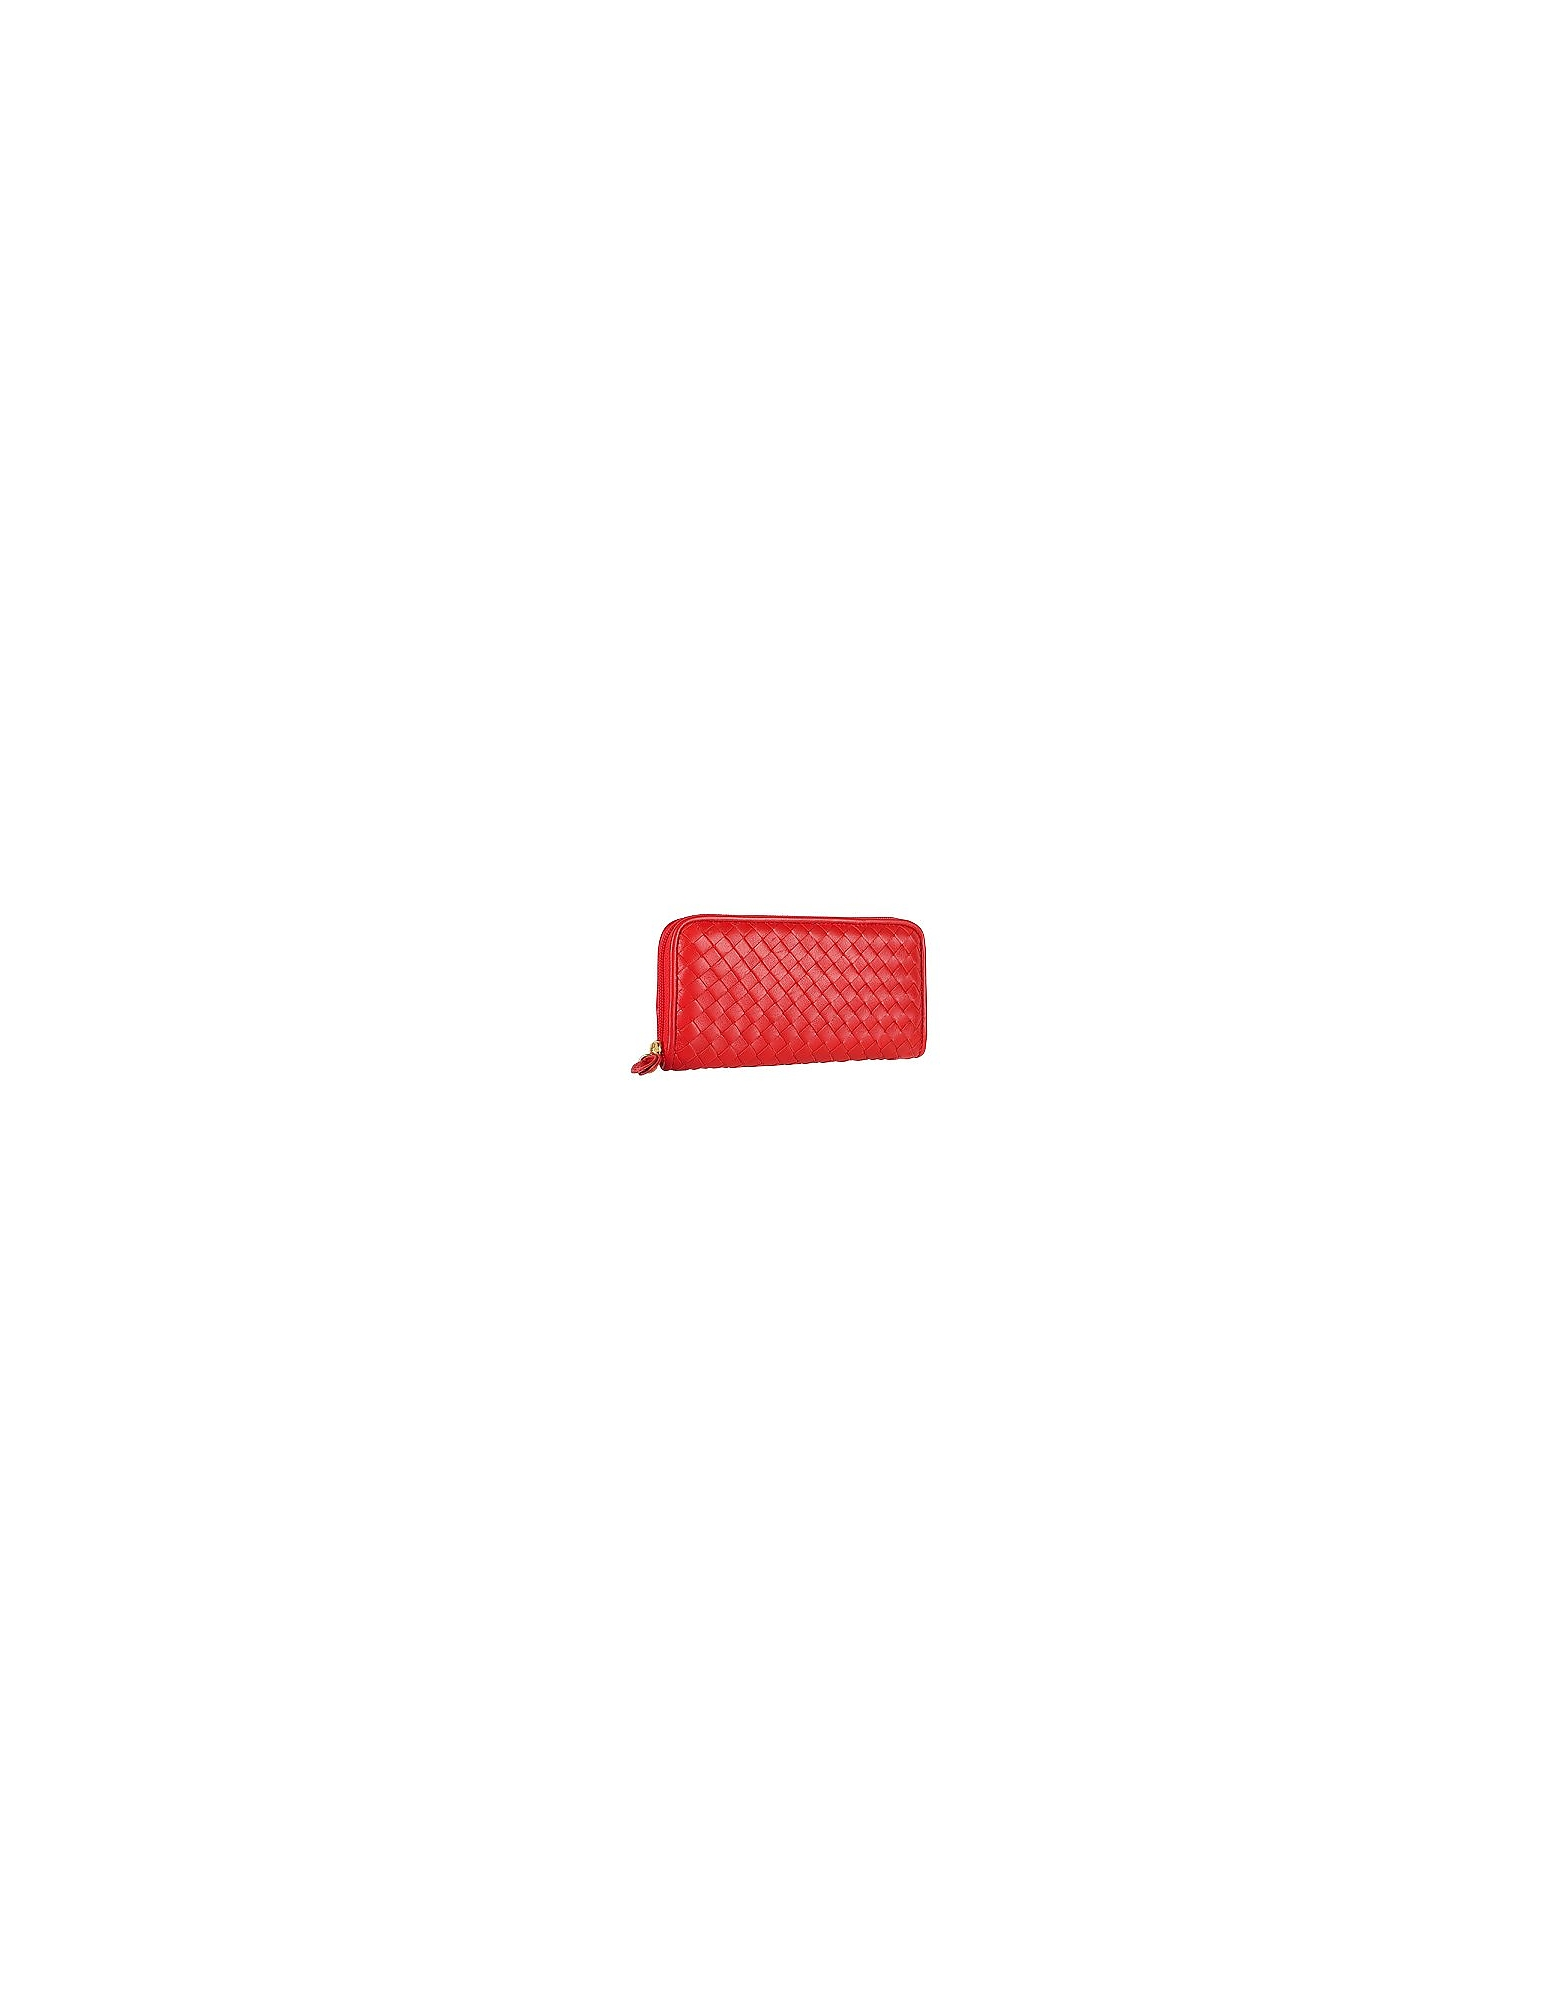 Fontanelli Wallets, Women's Red Italian Woven Leather Concertina Zip Wallet